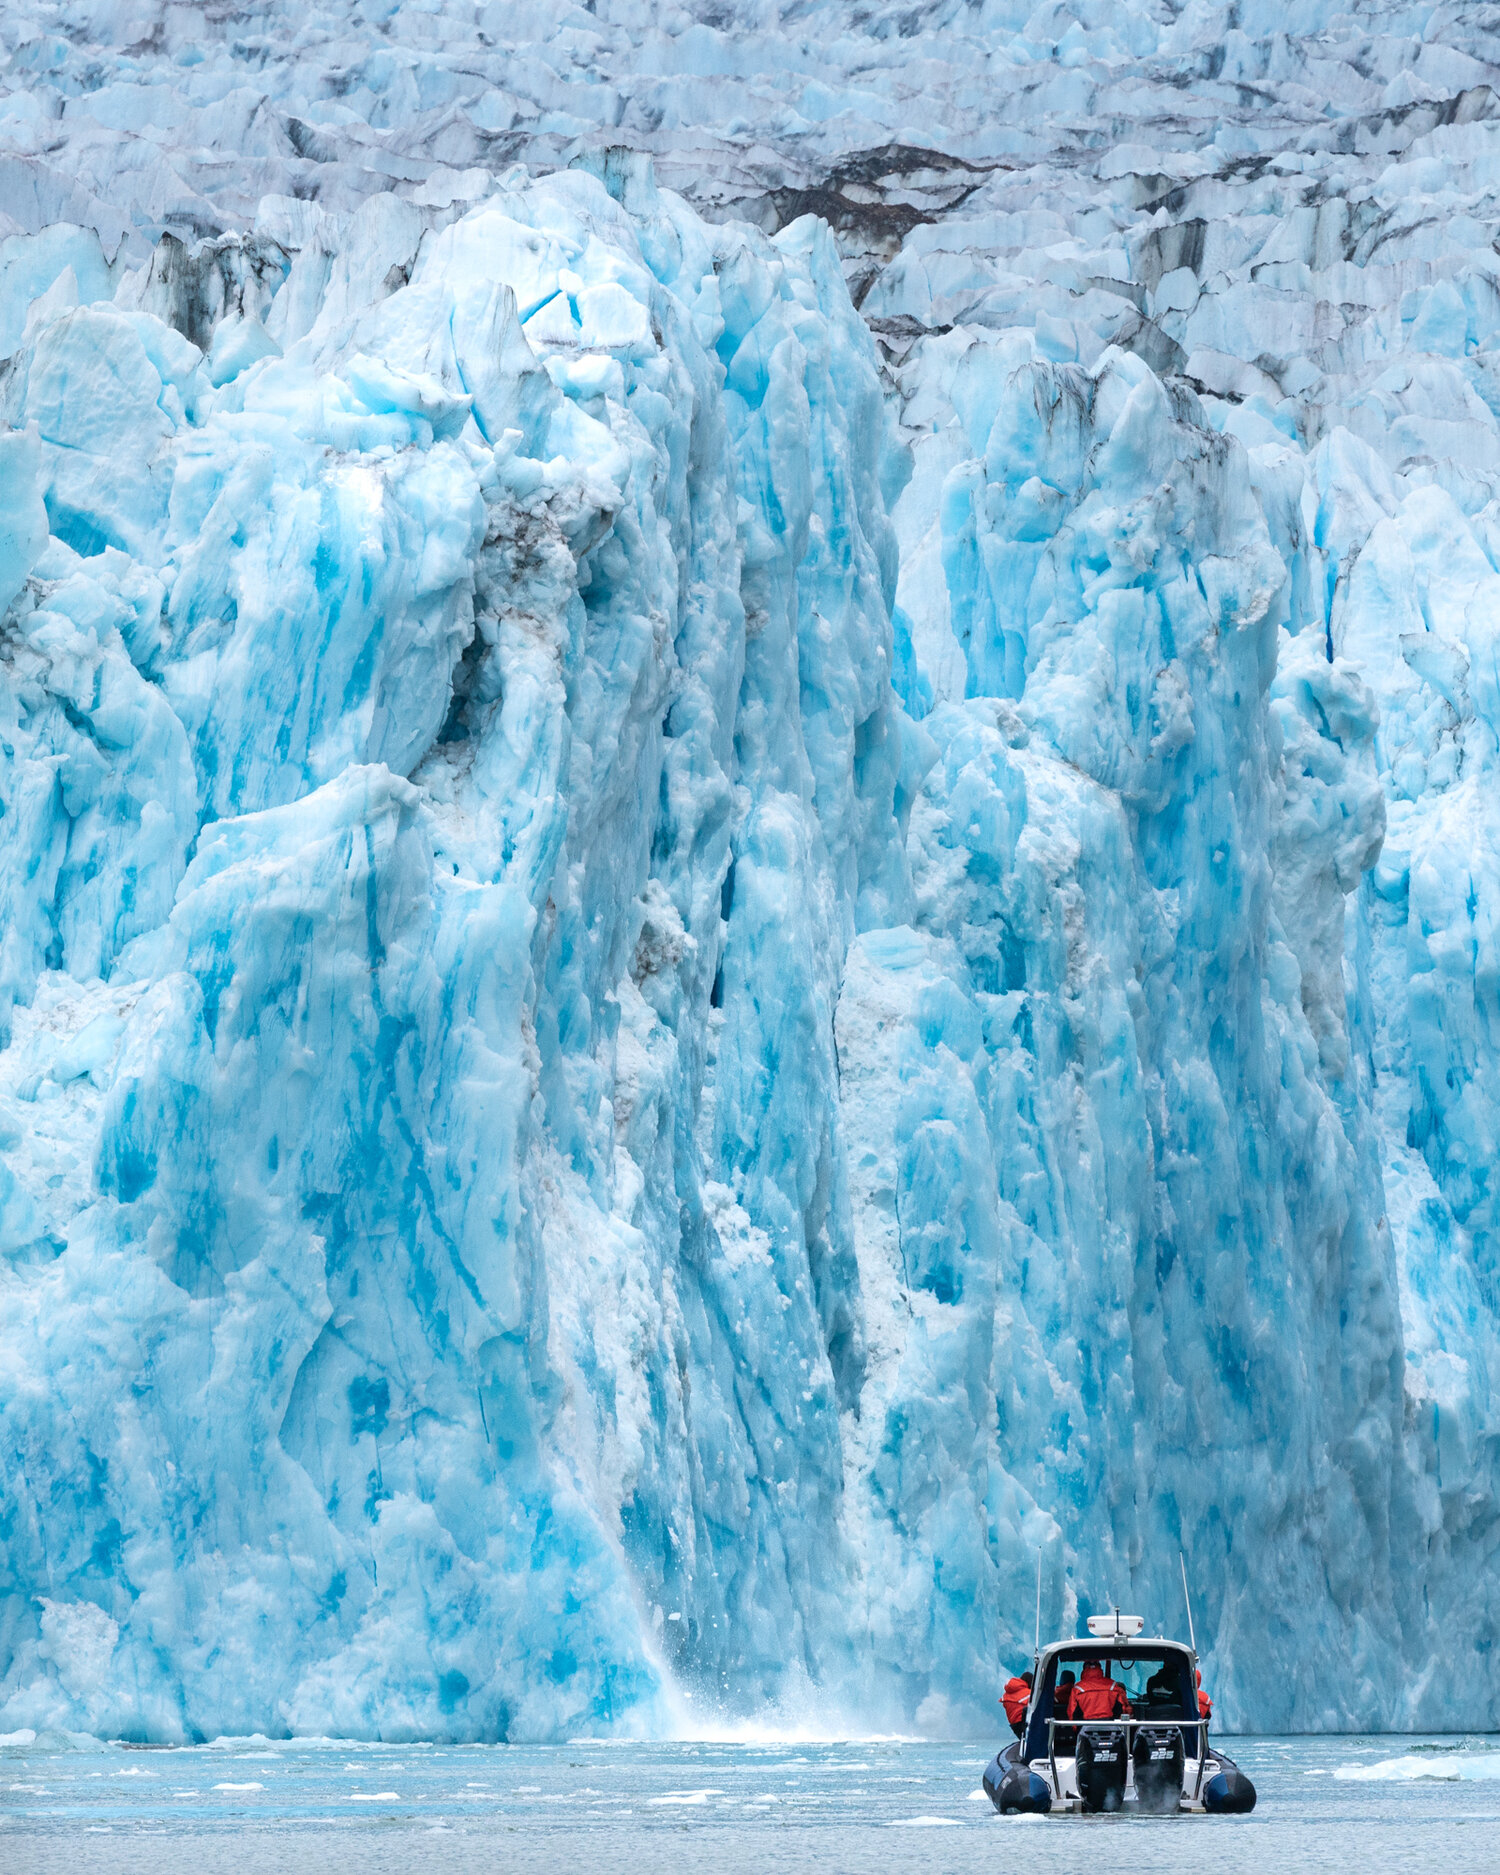 Alaska Glacier Photography Workshop Further Photo Expeditions_1.jpg